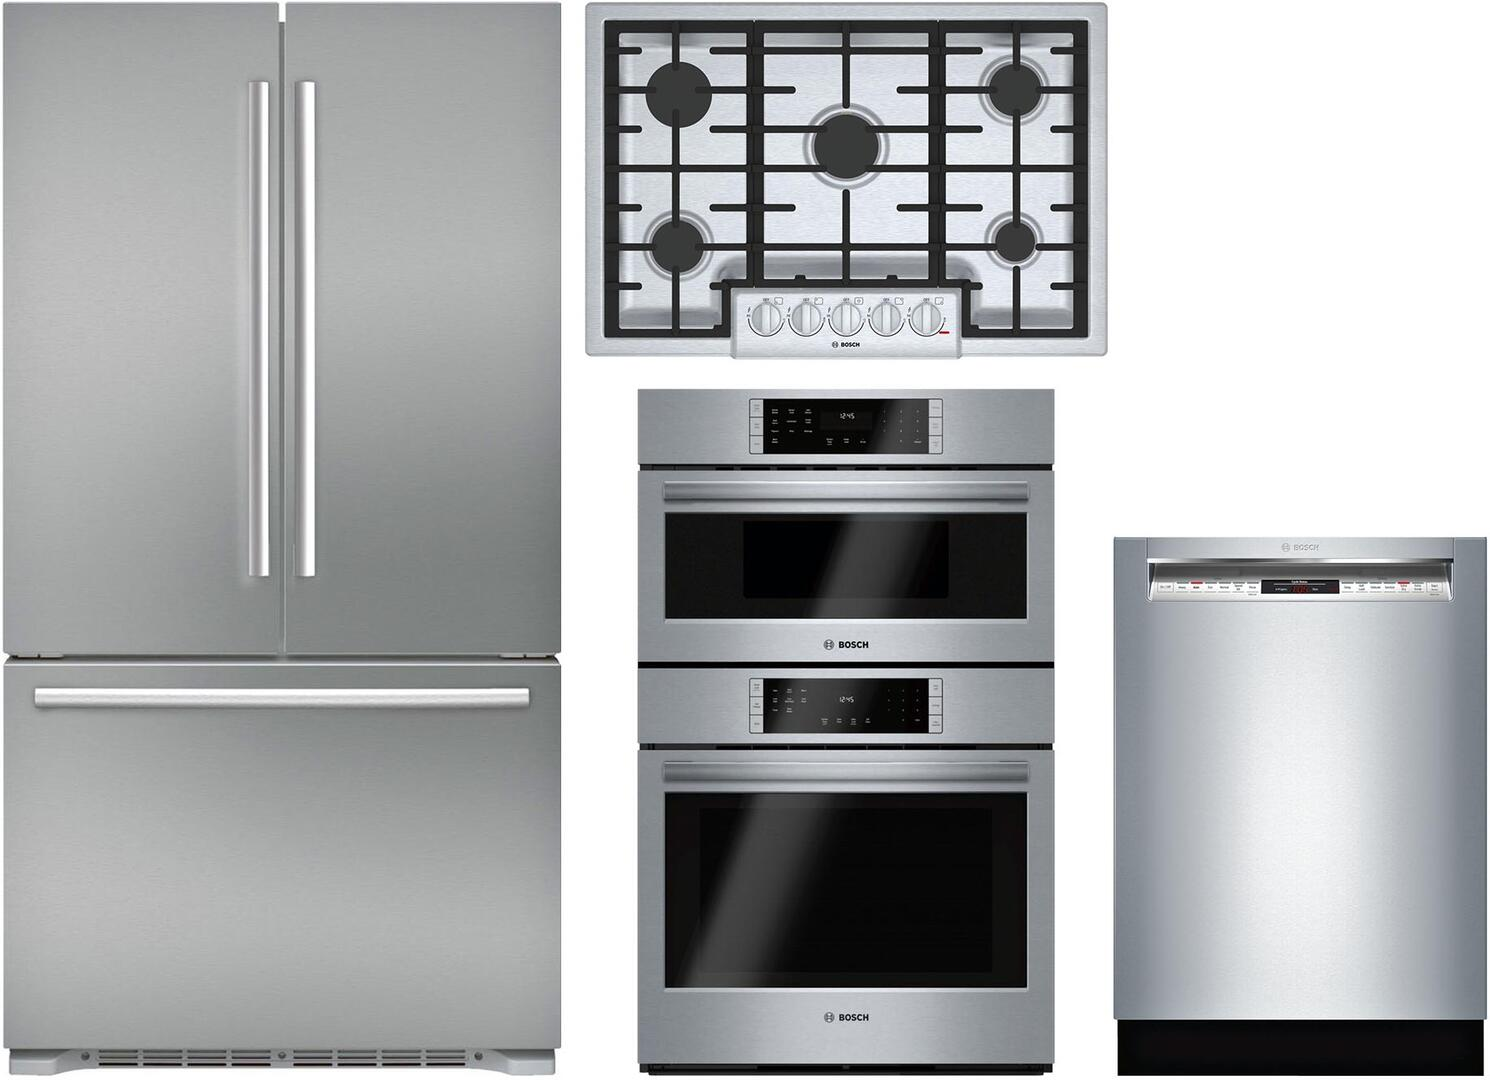 bosch 1006014 kitchen appliance packages appliances connection rh appliancesconnection com bosch kitchen appliance package deals